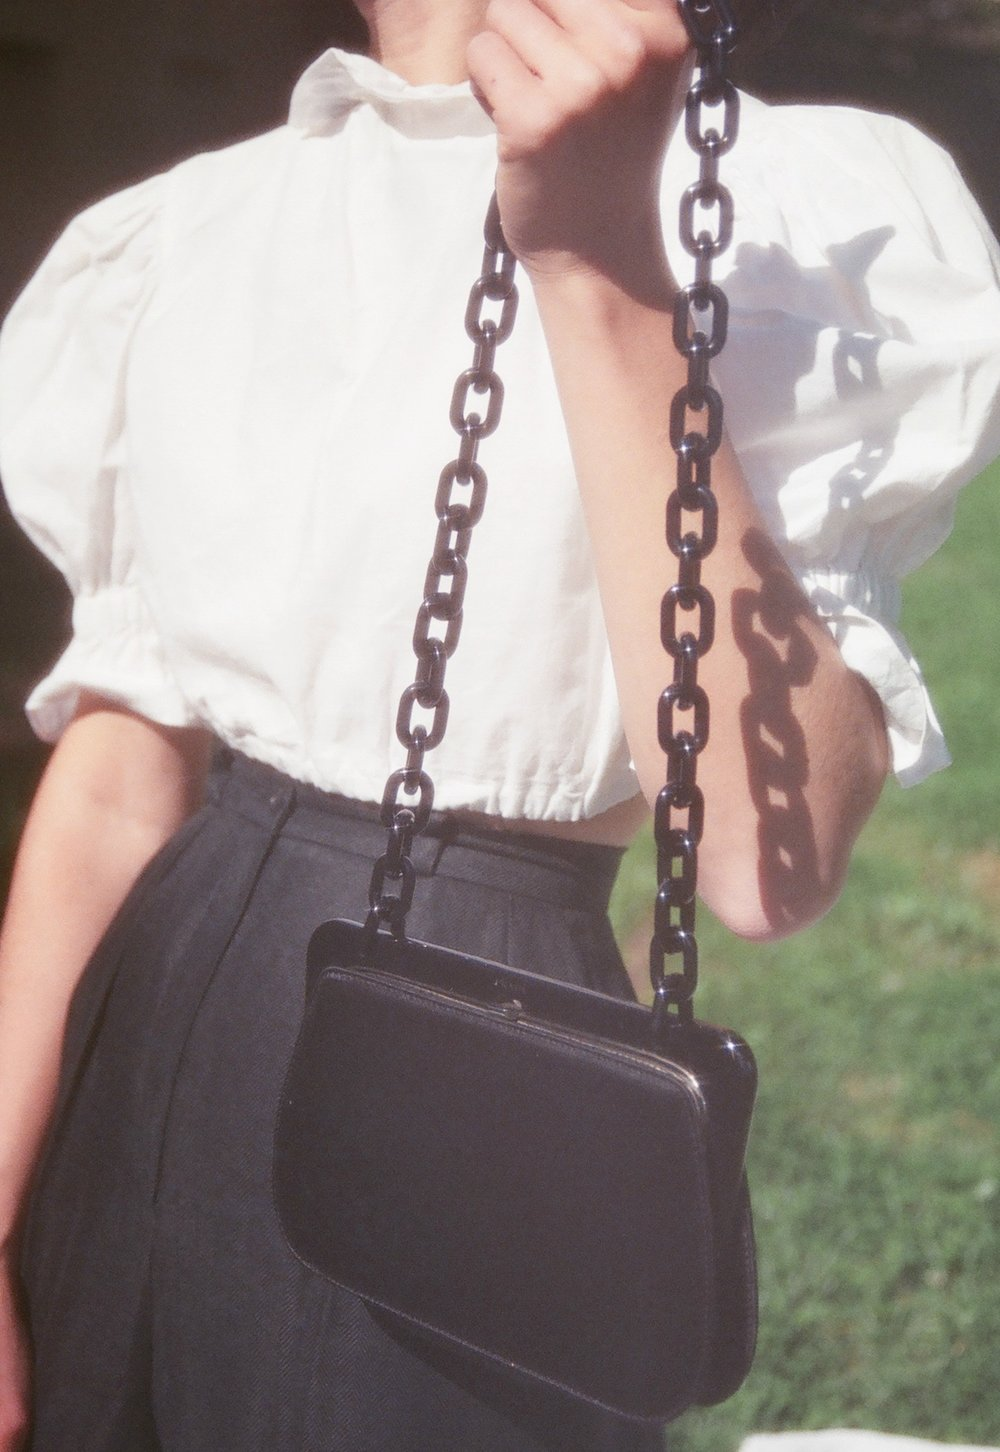 prada chain black bag 1.jpg